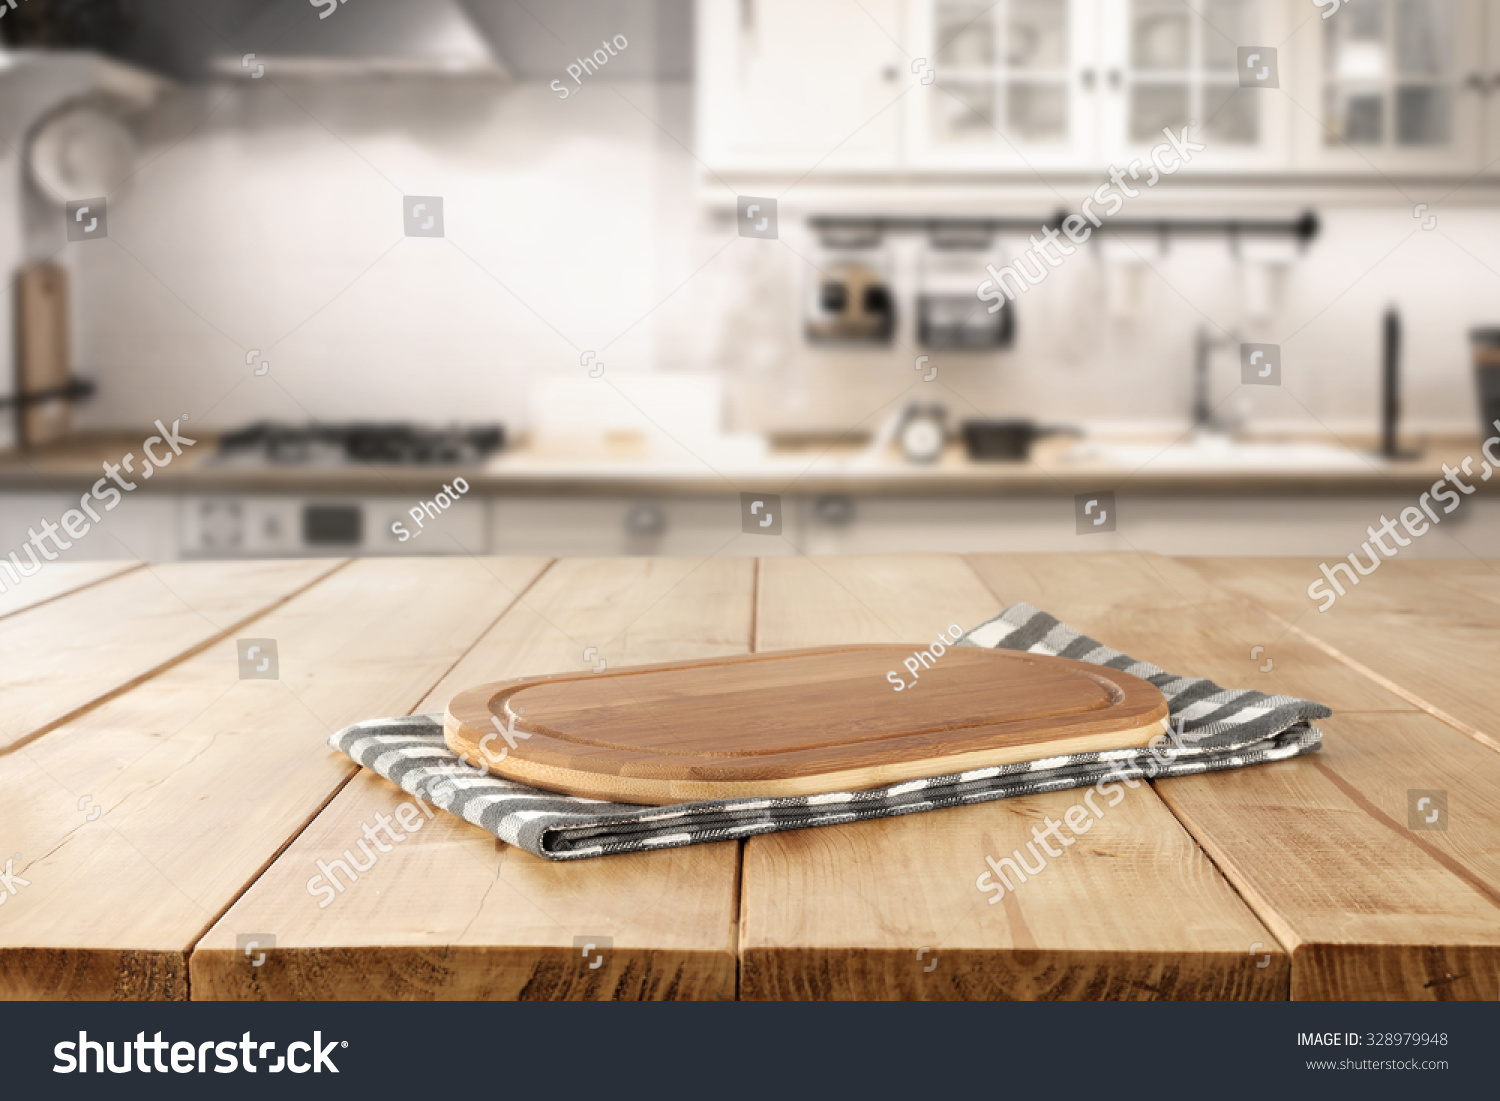 Kitchen Desk Blurred Background Retro Kitchen Kitchen Desk Stock Photo